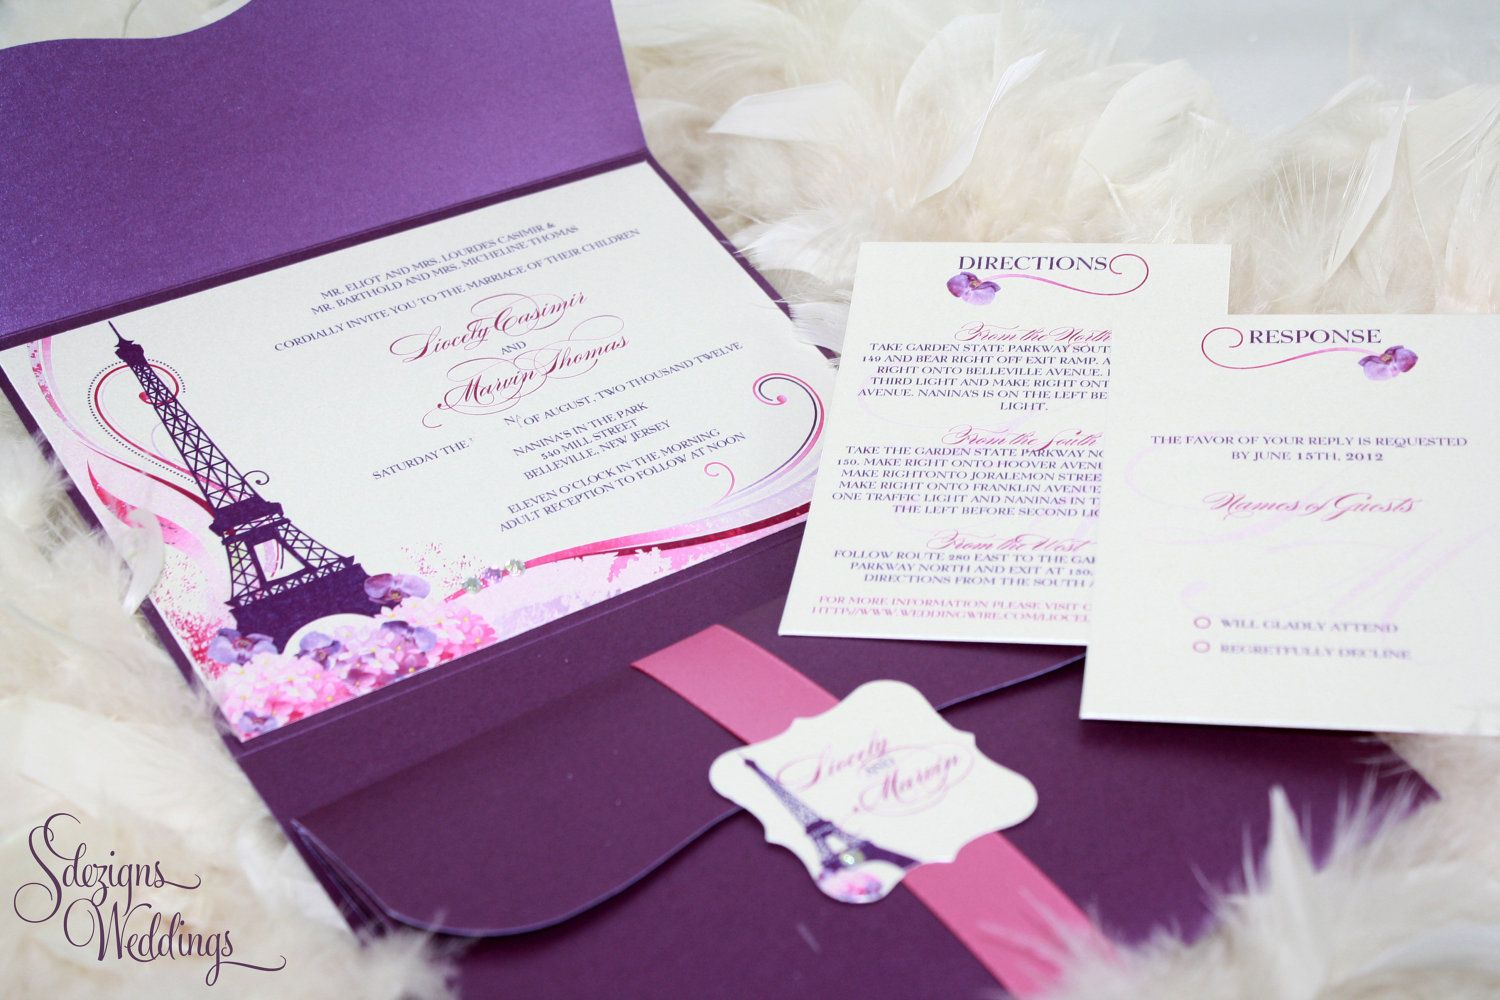 Gorgeous Paris Wedding Invitations | Cumpleaños | Pinterest ...